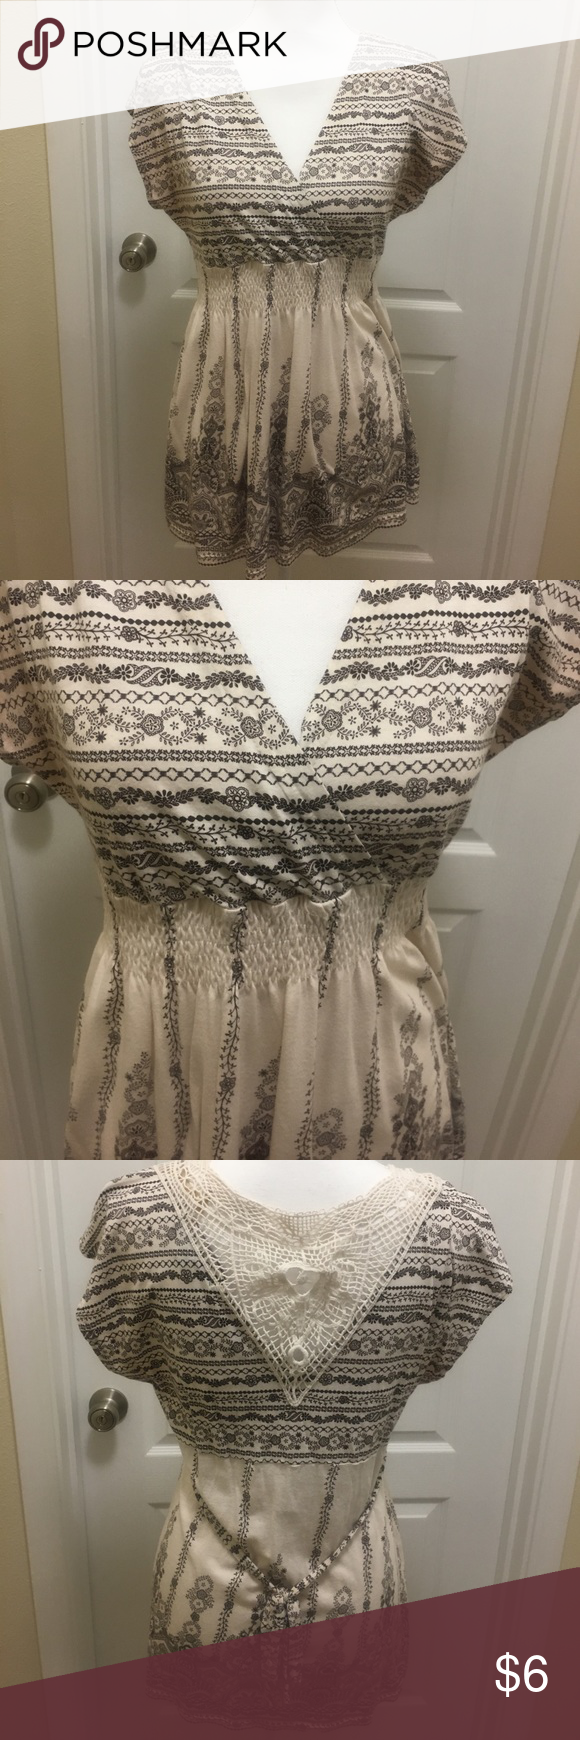 Brown/cream top Super cute and design on the back. Elastic at the waist to define shape Almost Famous Tops Blouses